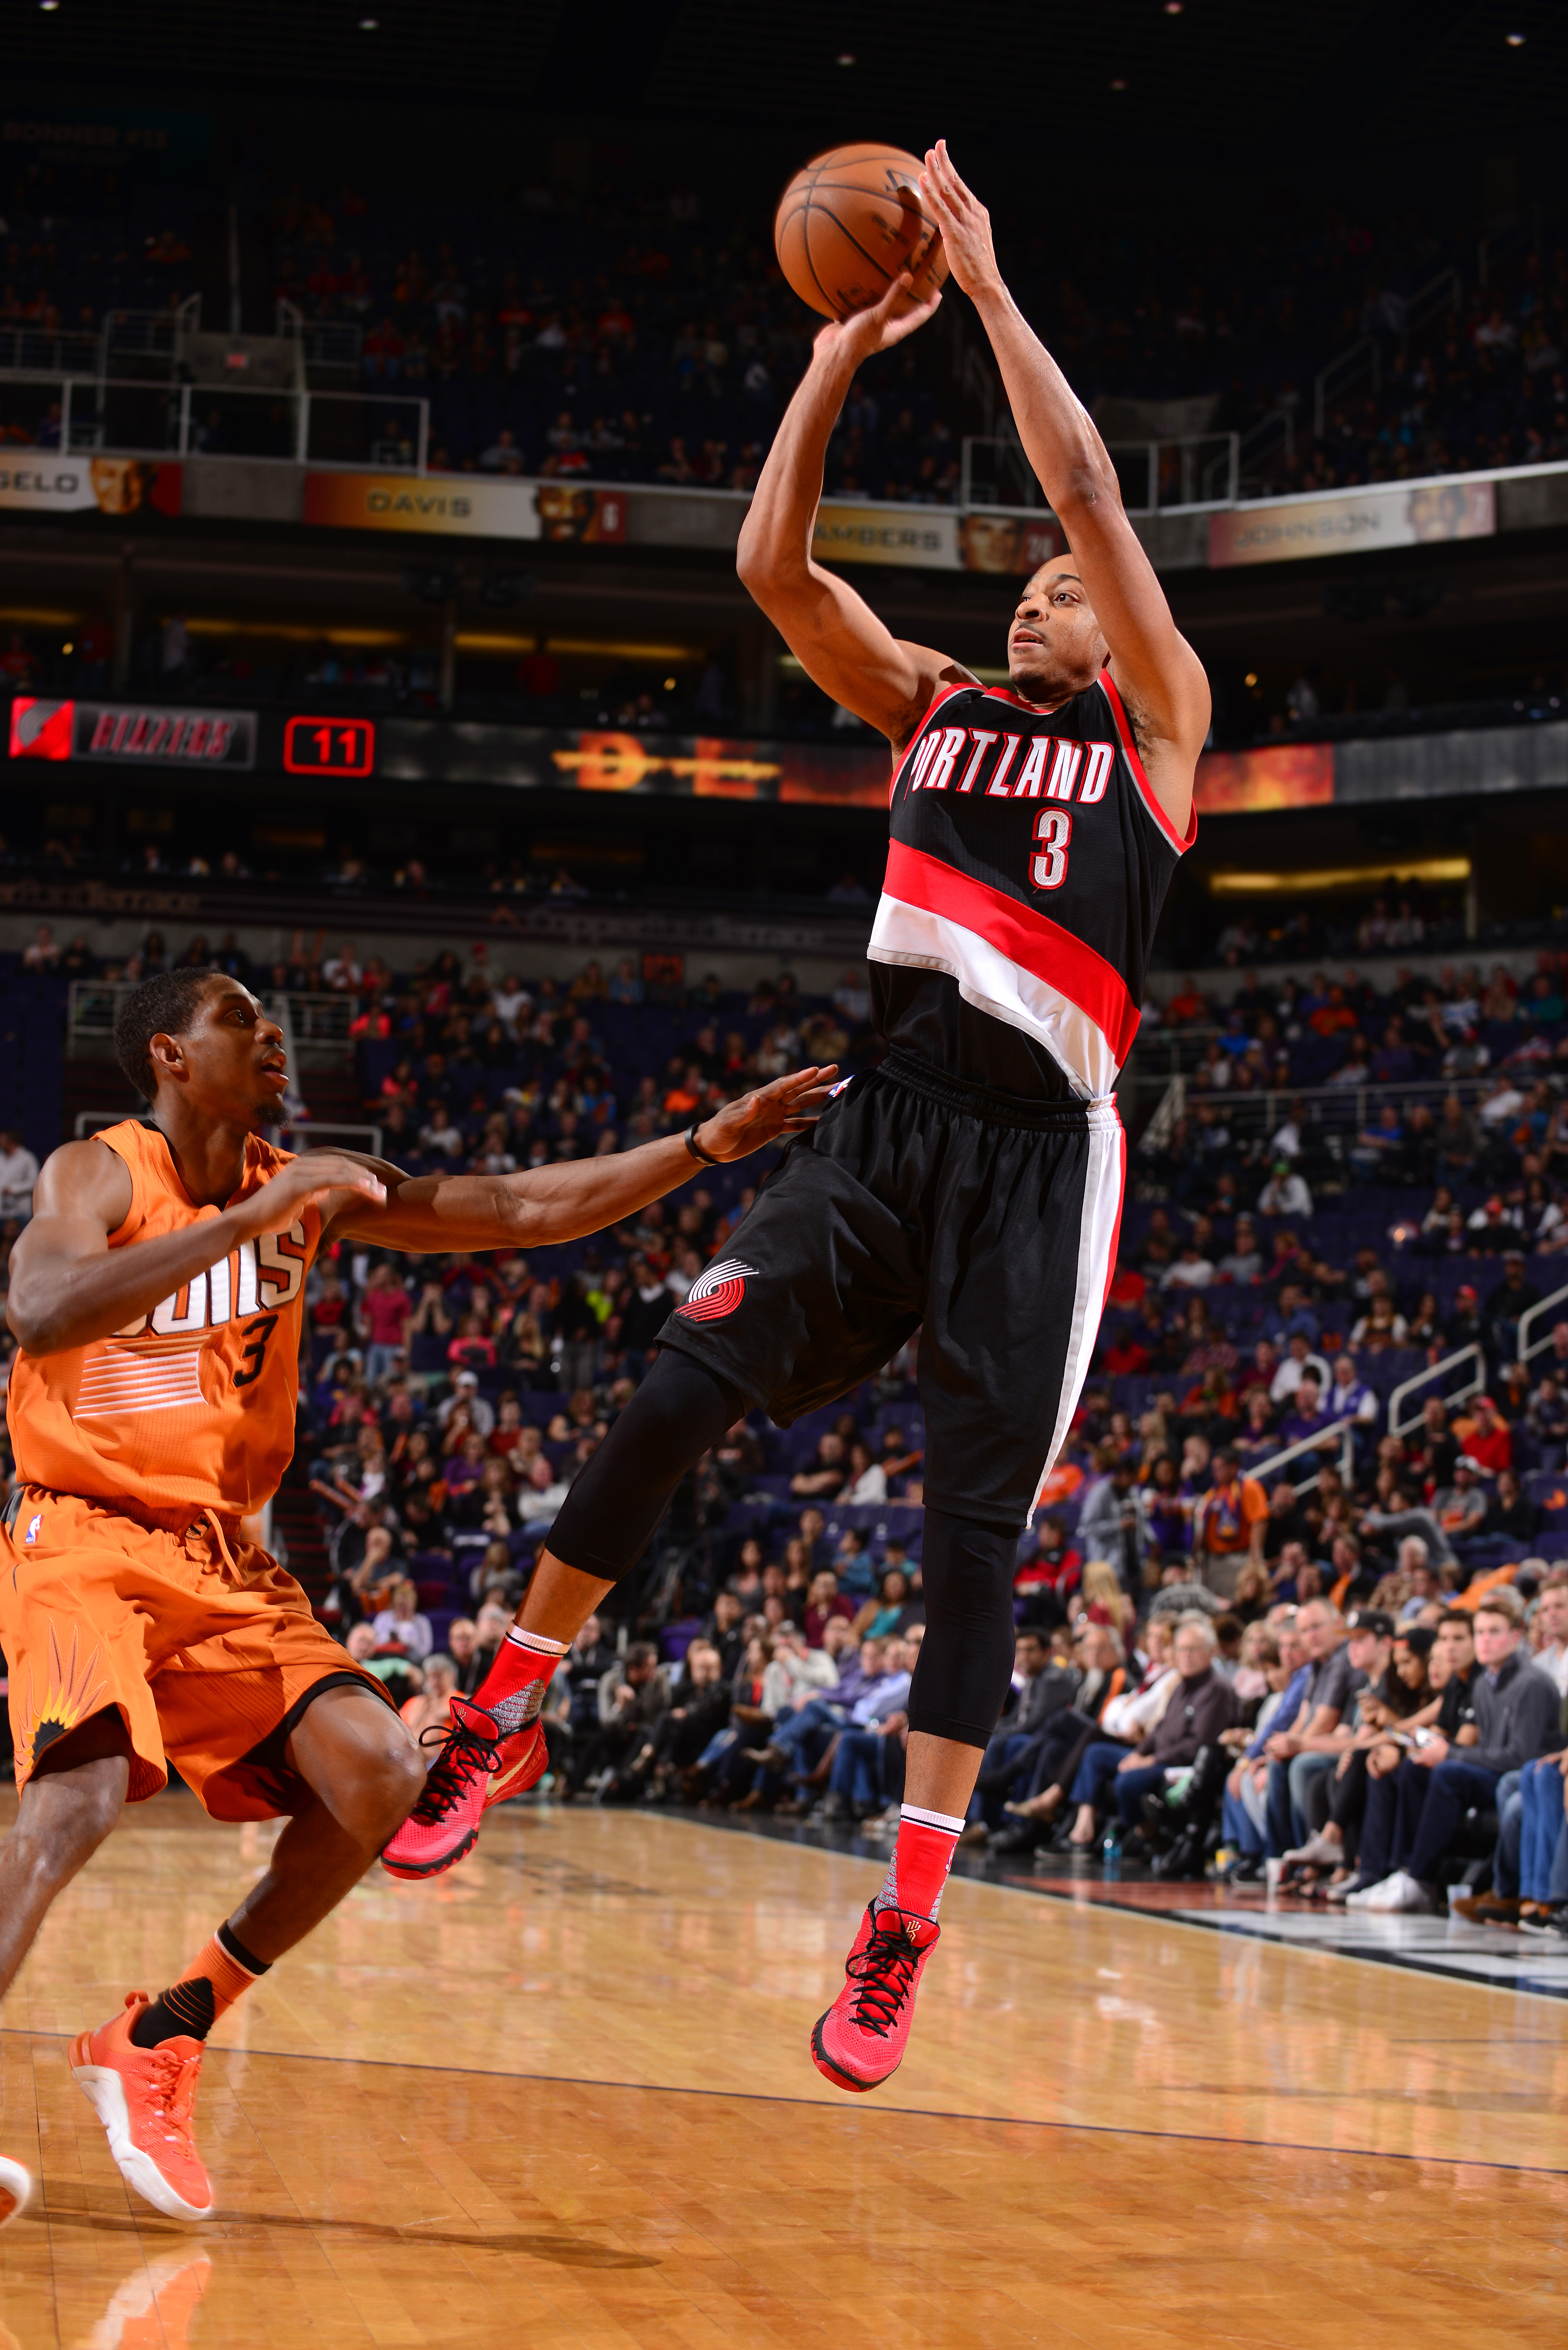 PHOENIX, AZ - DECEMBER 11: C.J. McCollum #3 of the Portland Trail Blazers shoots the ball during the game against the Phoenix Suns on December 11, 2015 at U.S. Airways Center in Phoenix, Arizona. (Photo by Barry Gossage/NBAE via Getty Images)